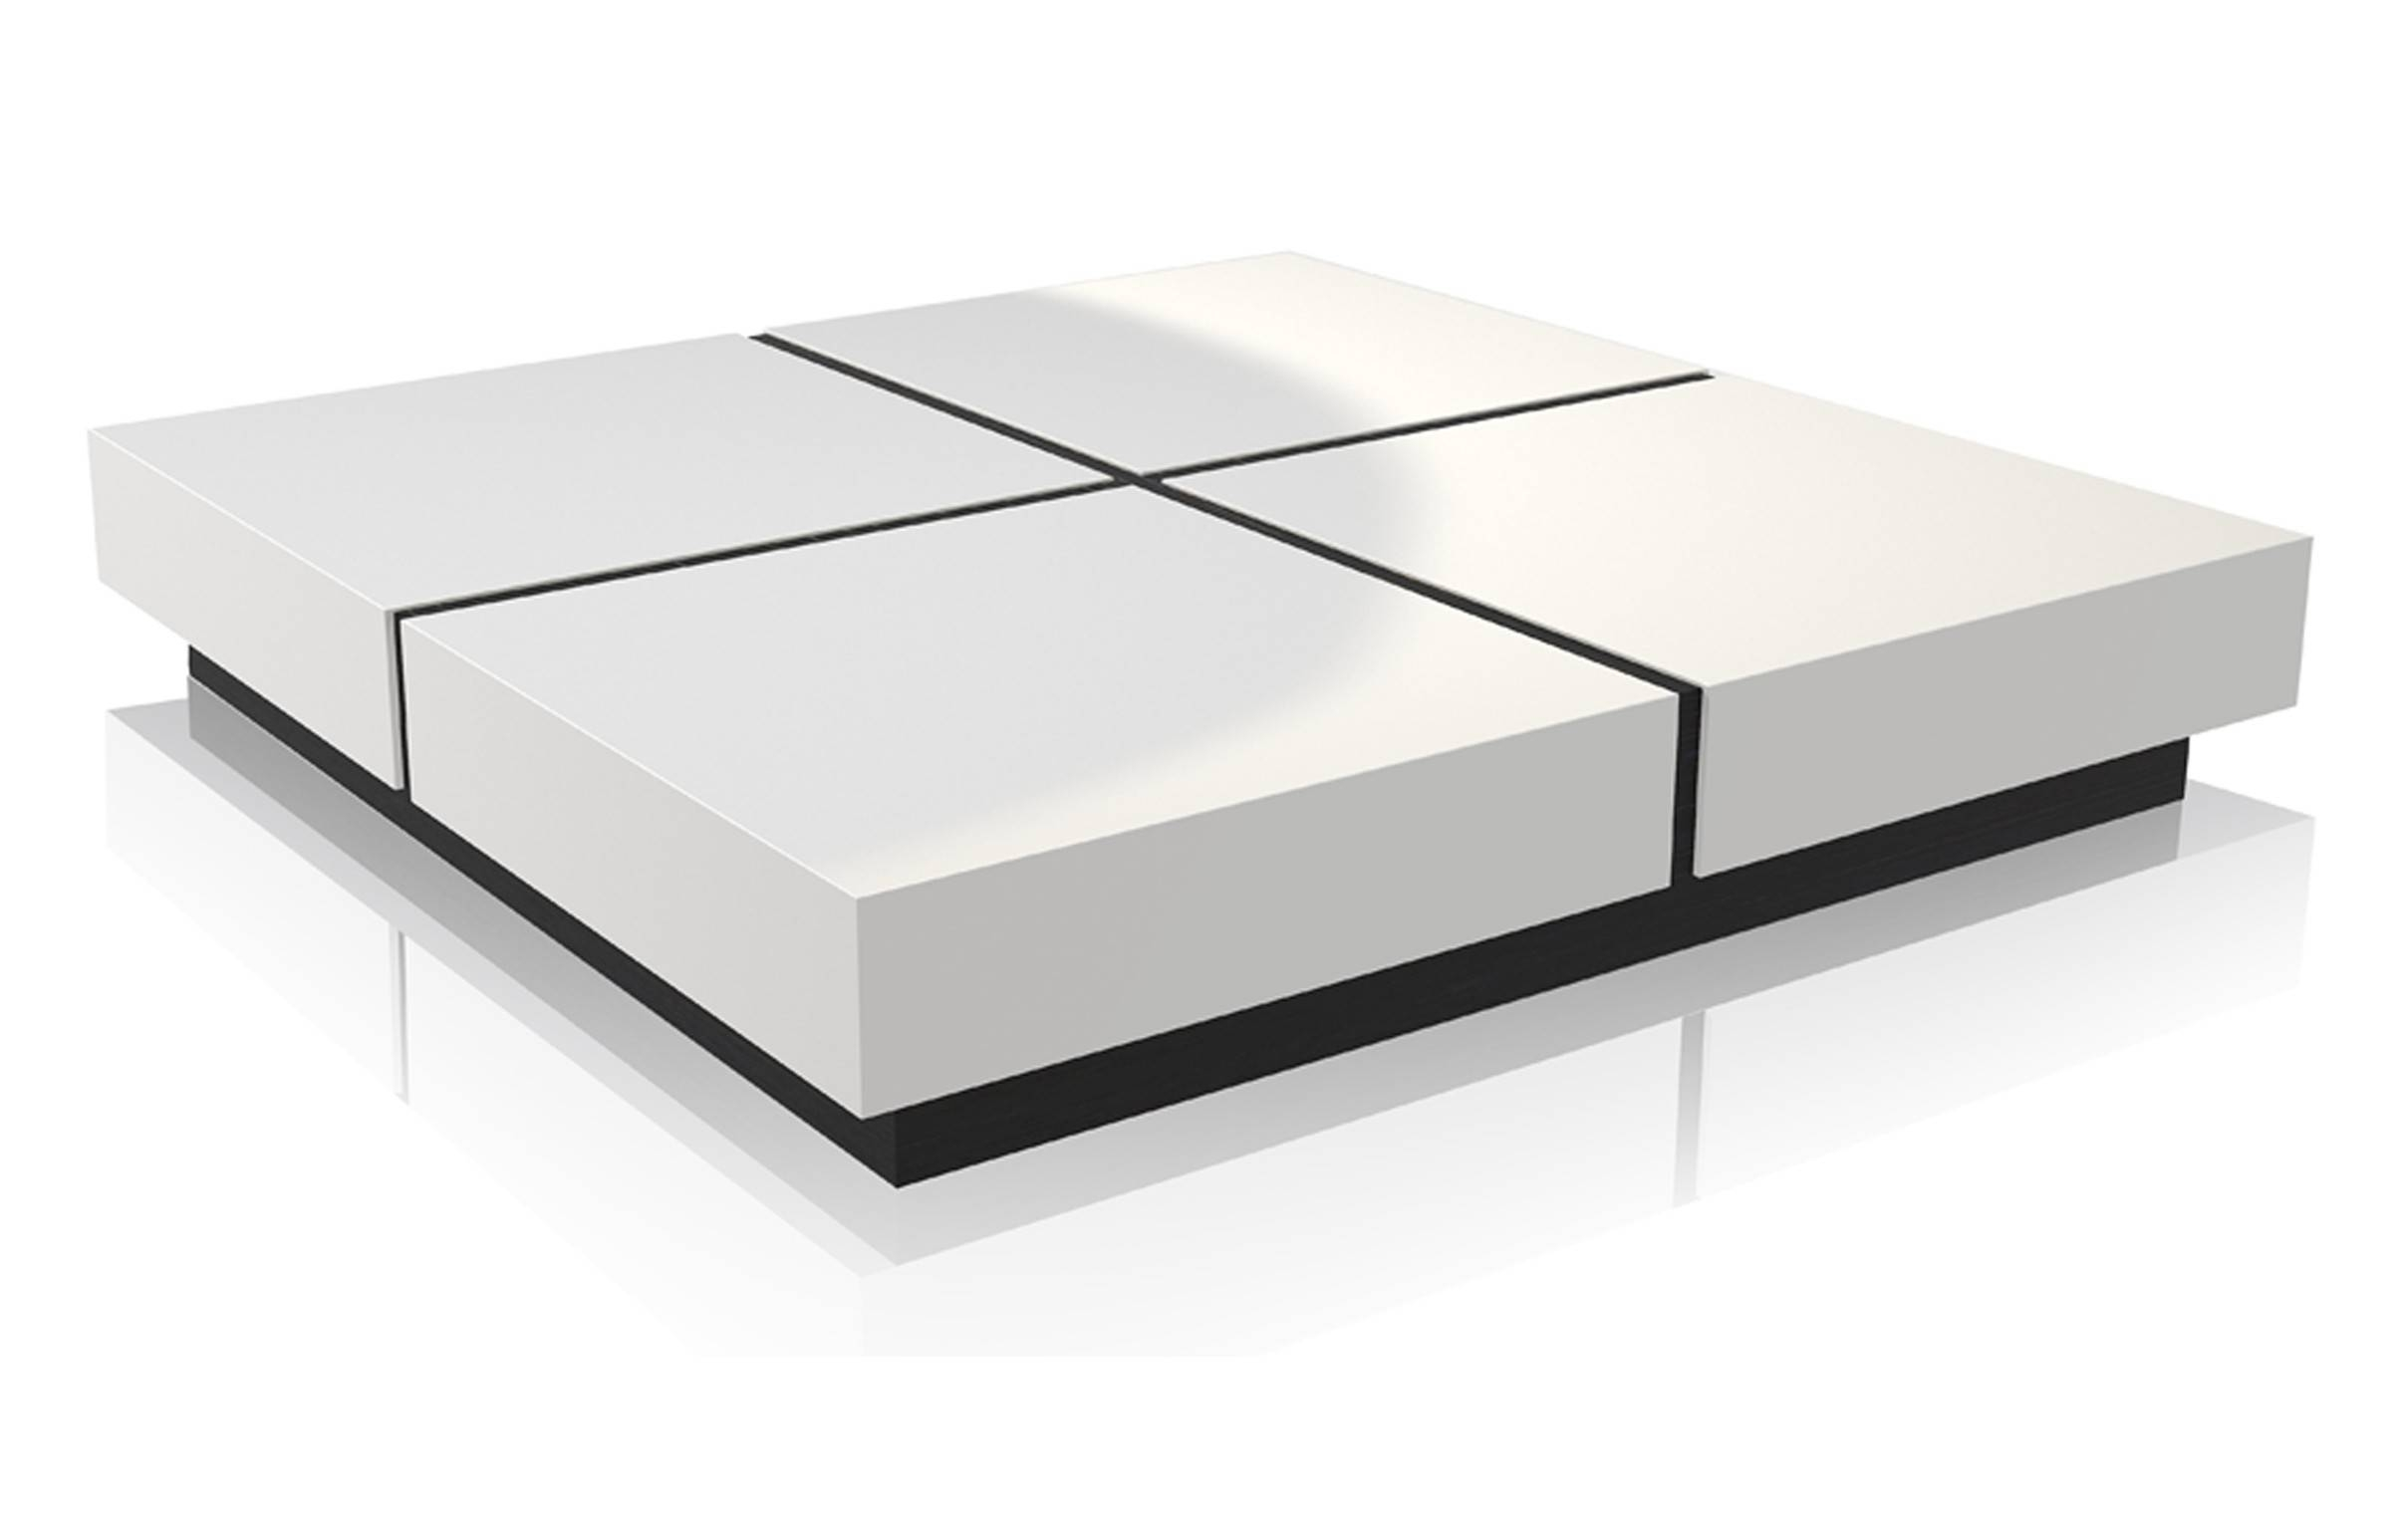 Contemporary White Coffee Tables | Coffee Tables Decoration Throughout White Coffee Tables With Storage (View 5 of 30)